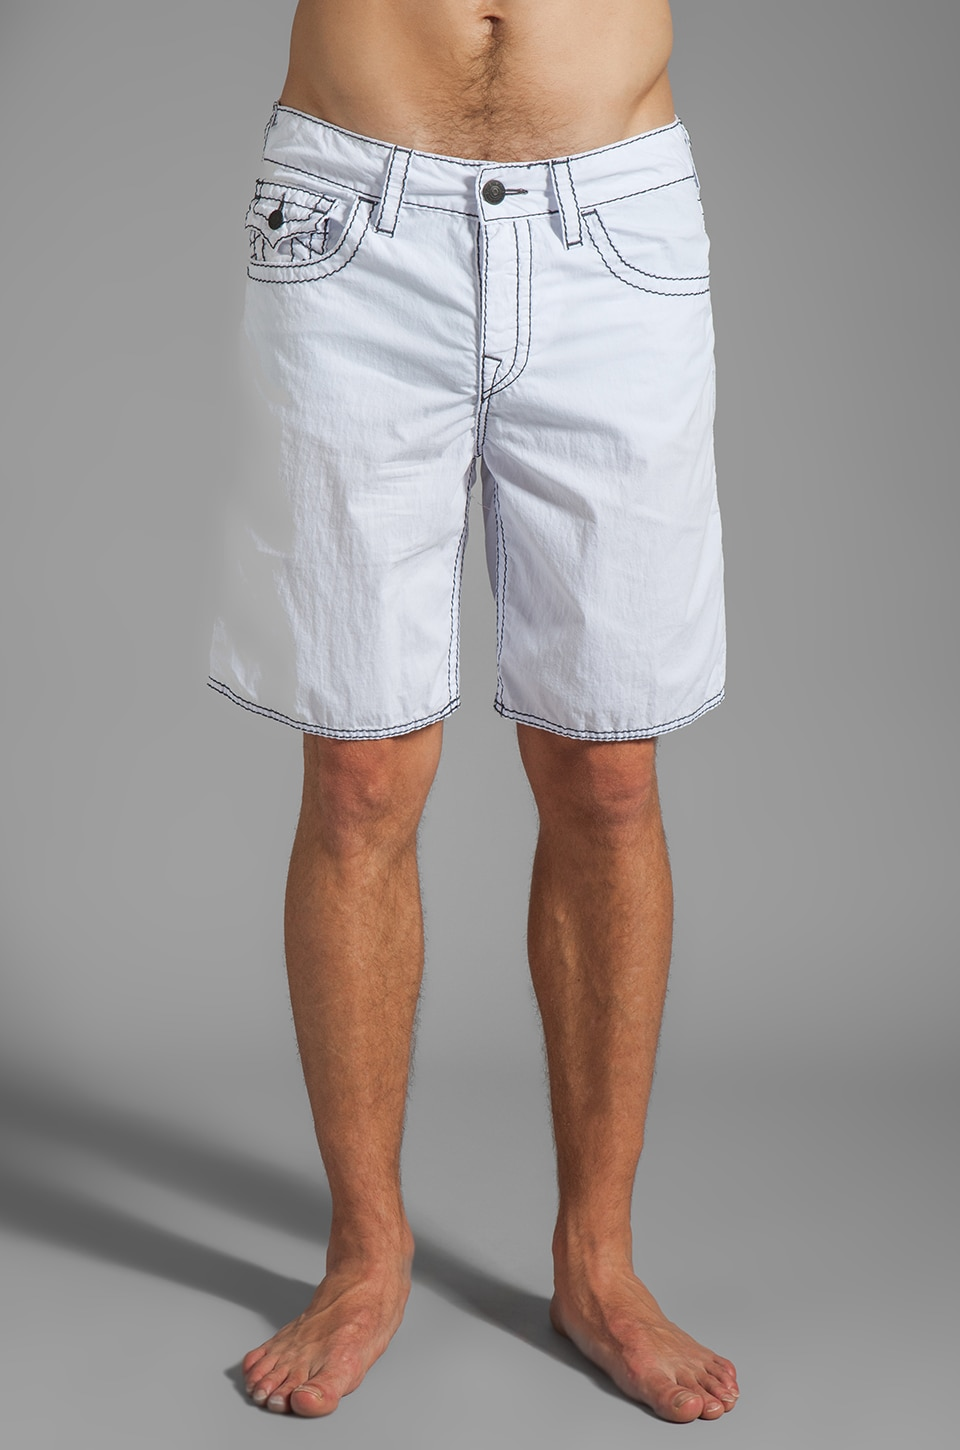 True Religion 5 Pocket Big T Boardshort in White